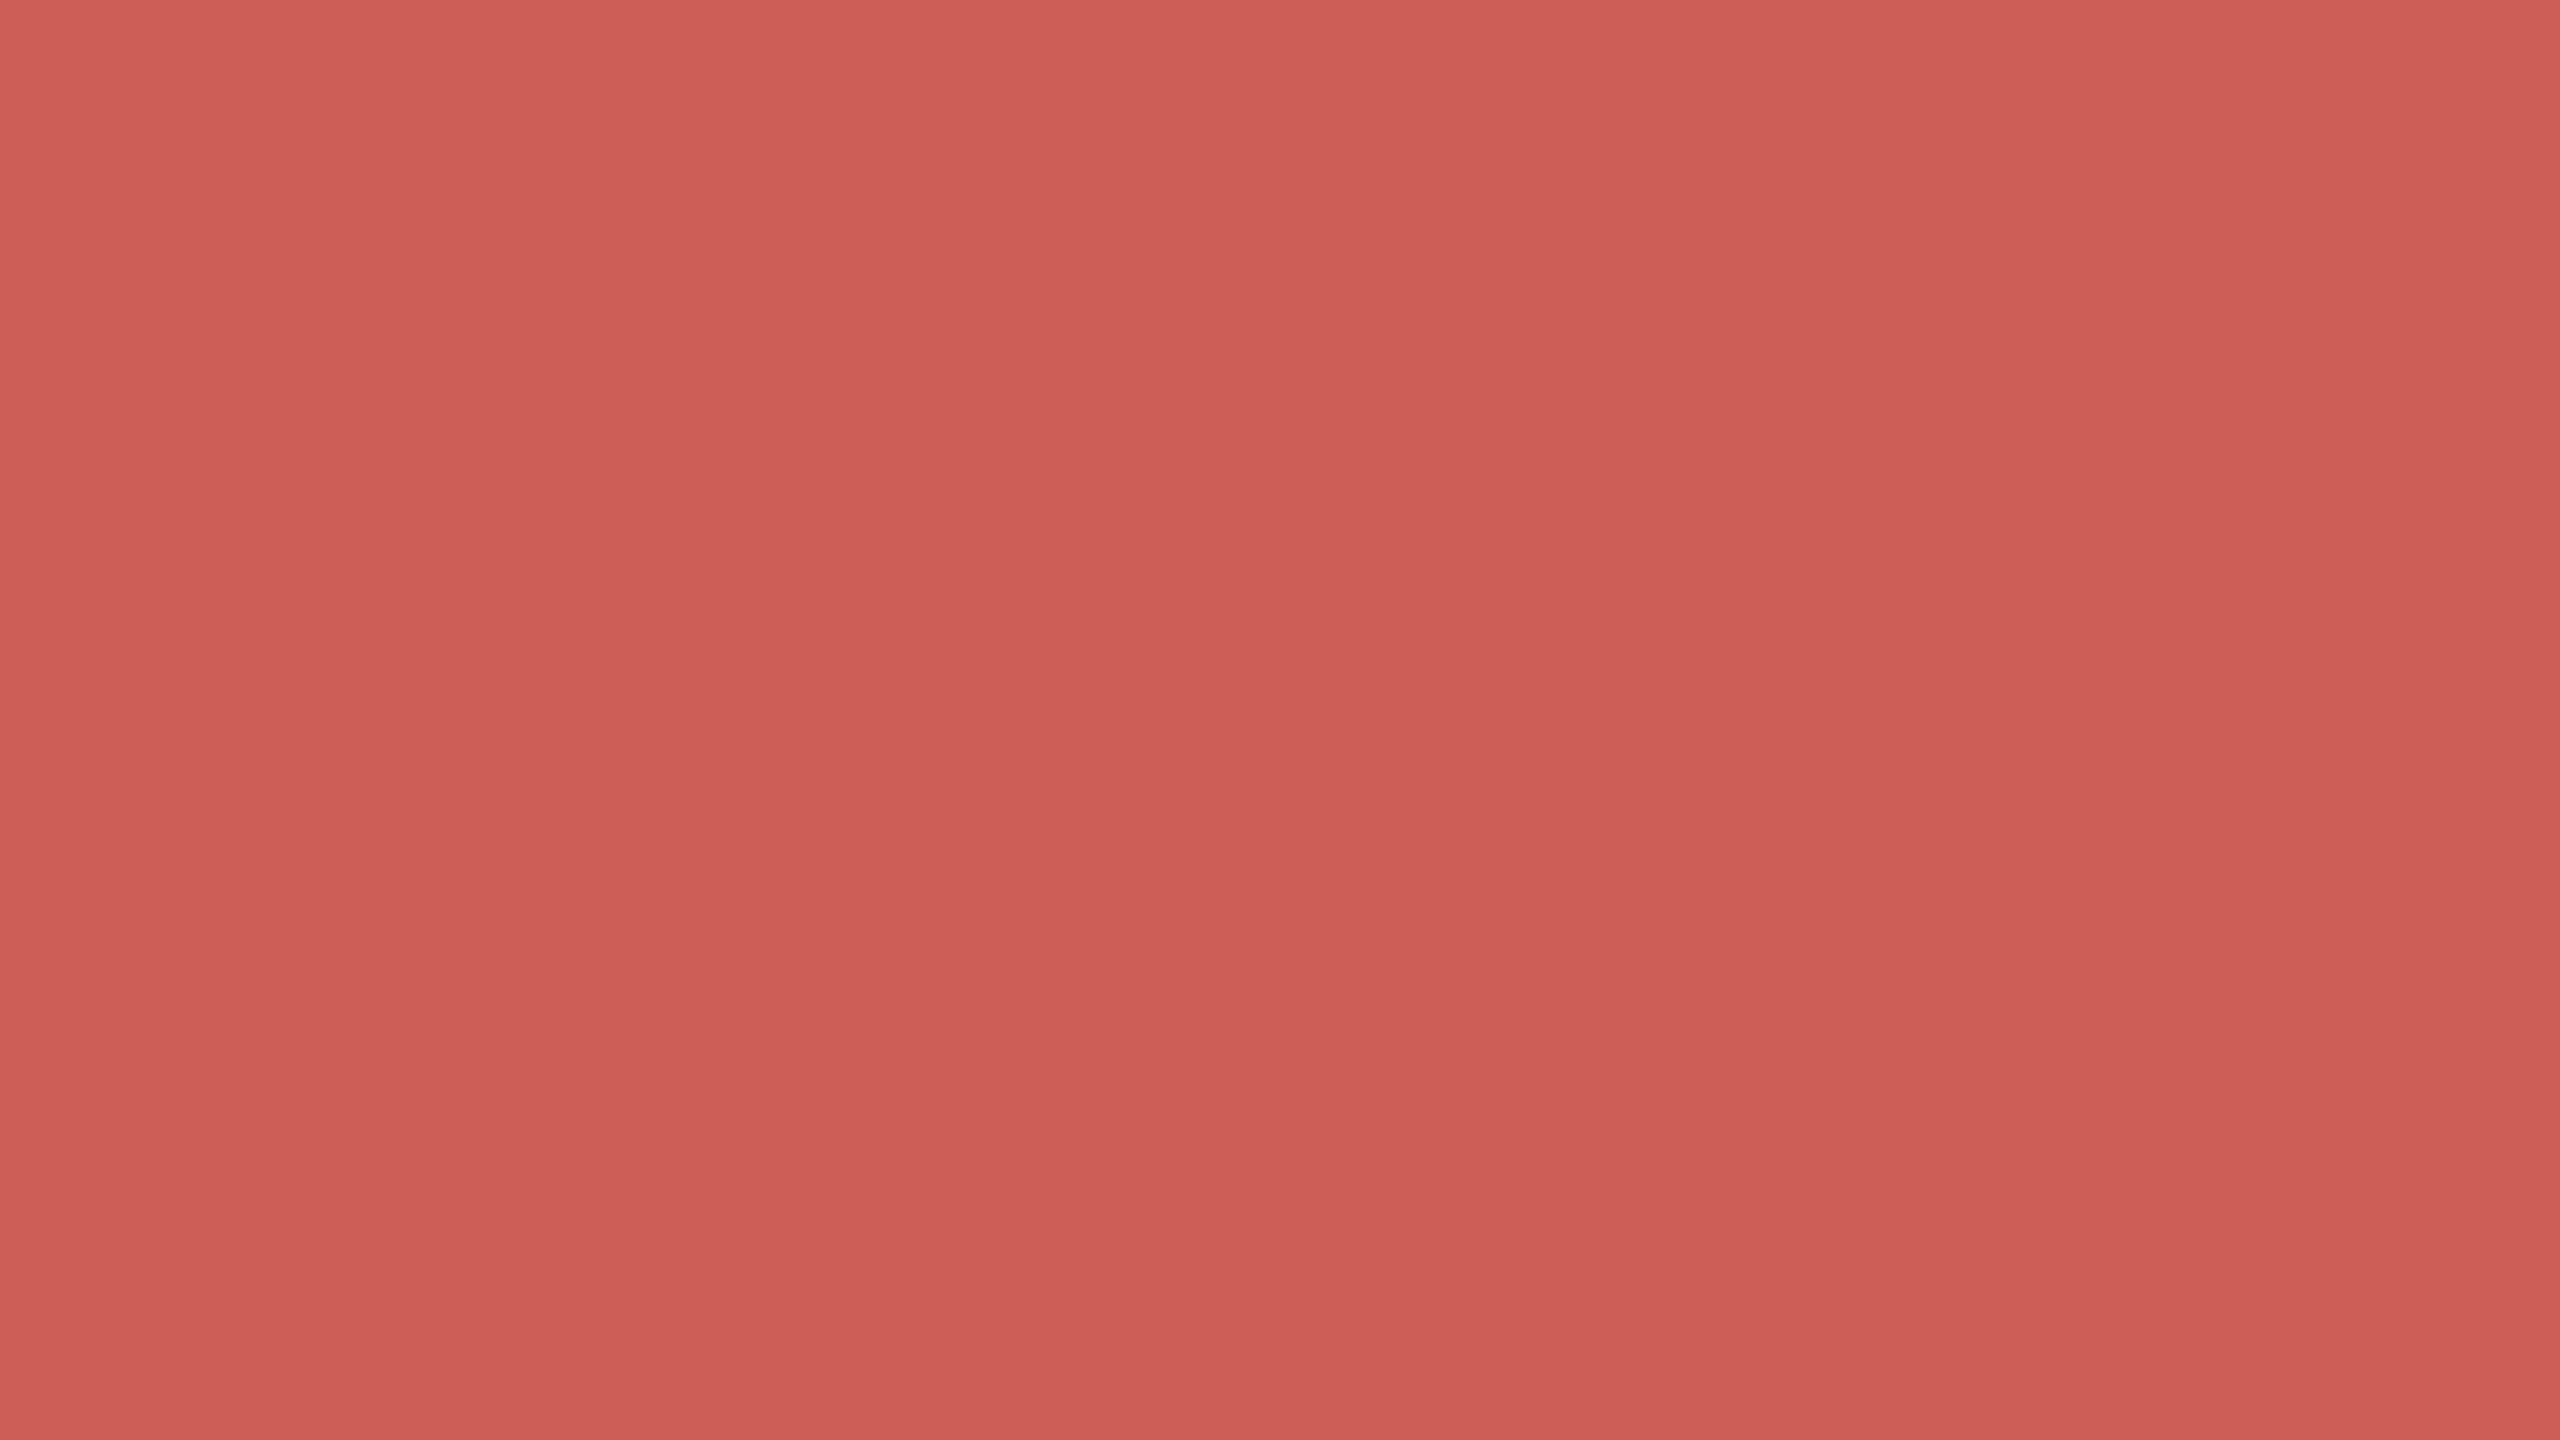 2560x1440 Indian Red Solid Color Background